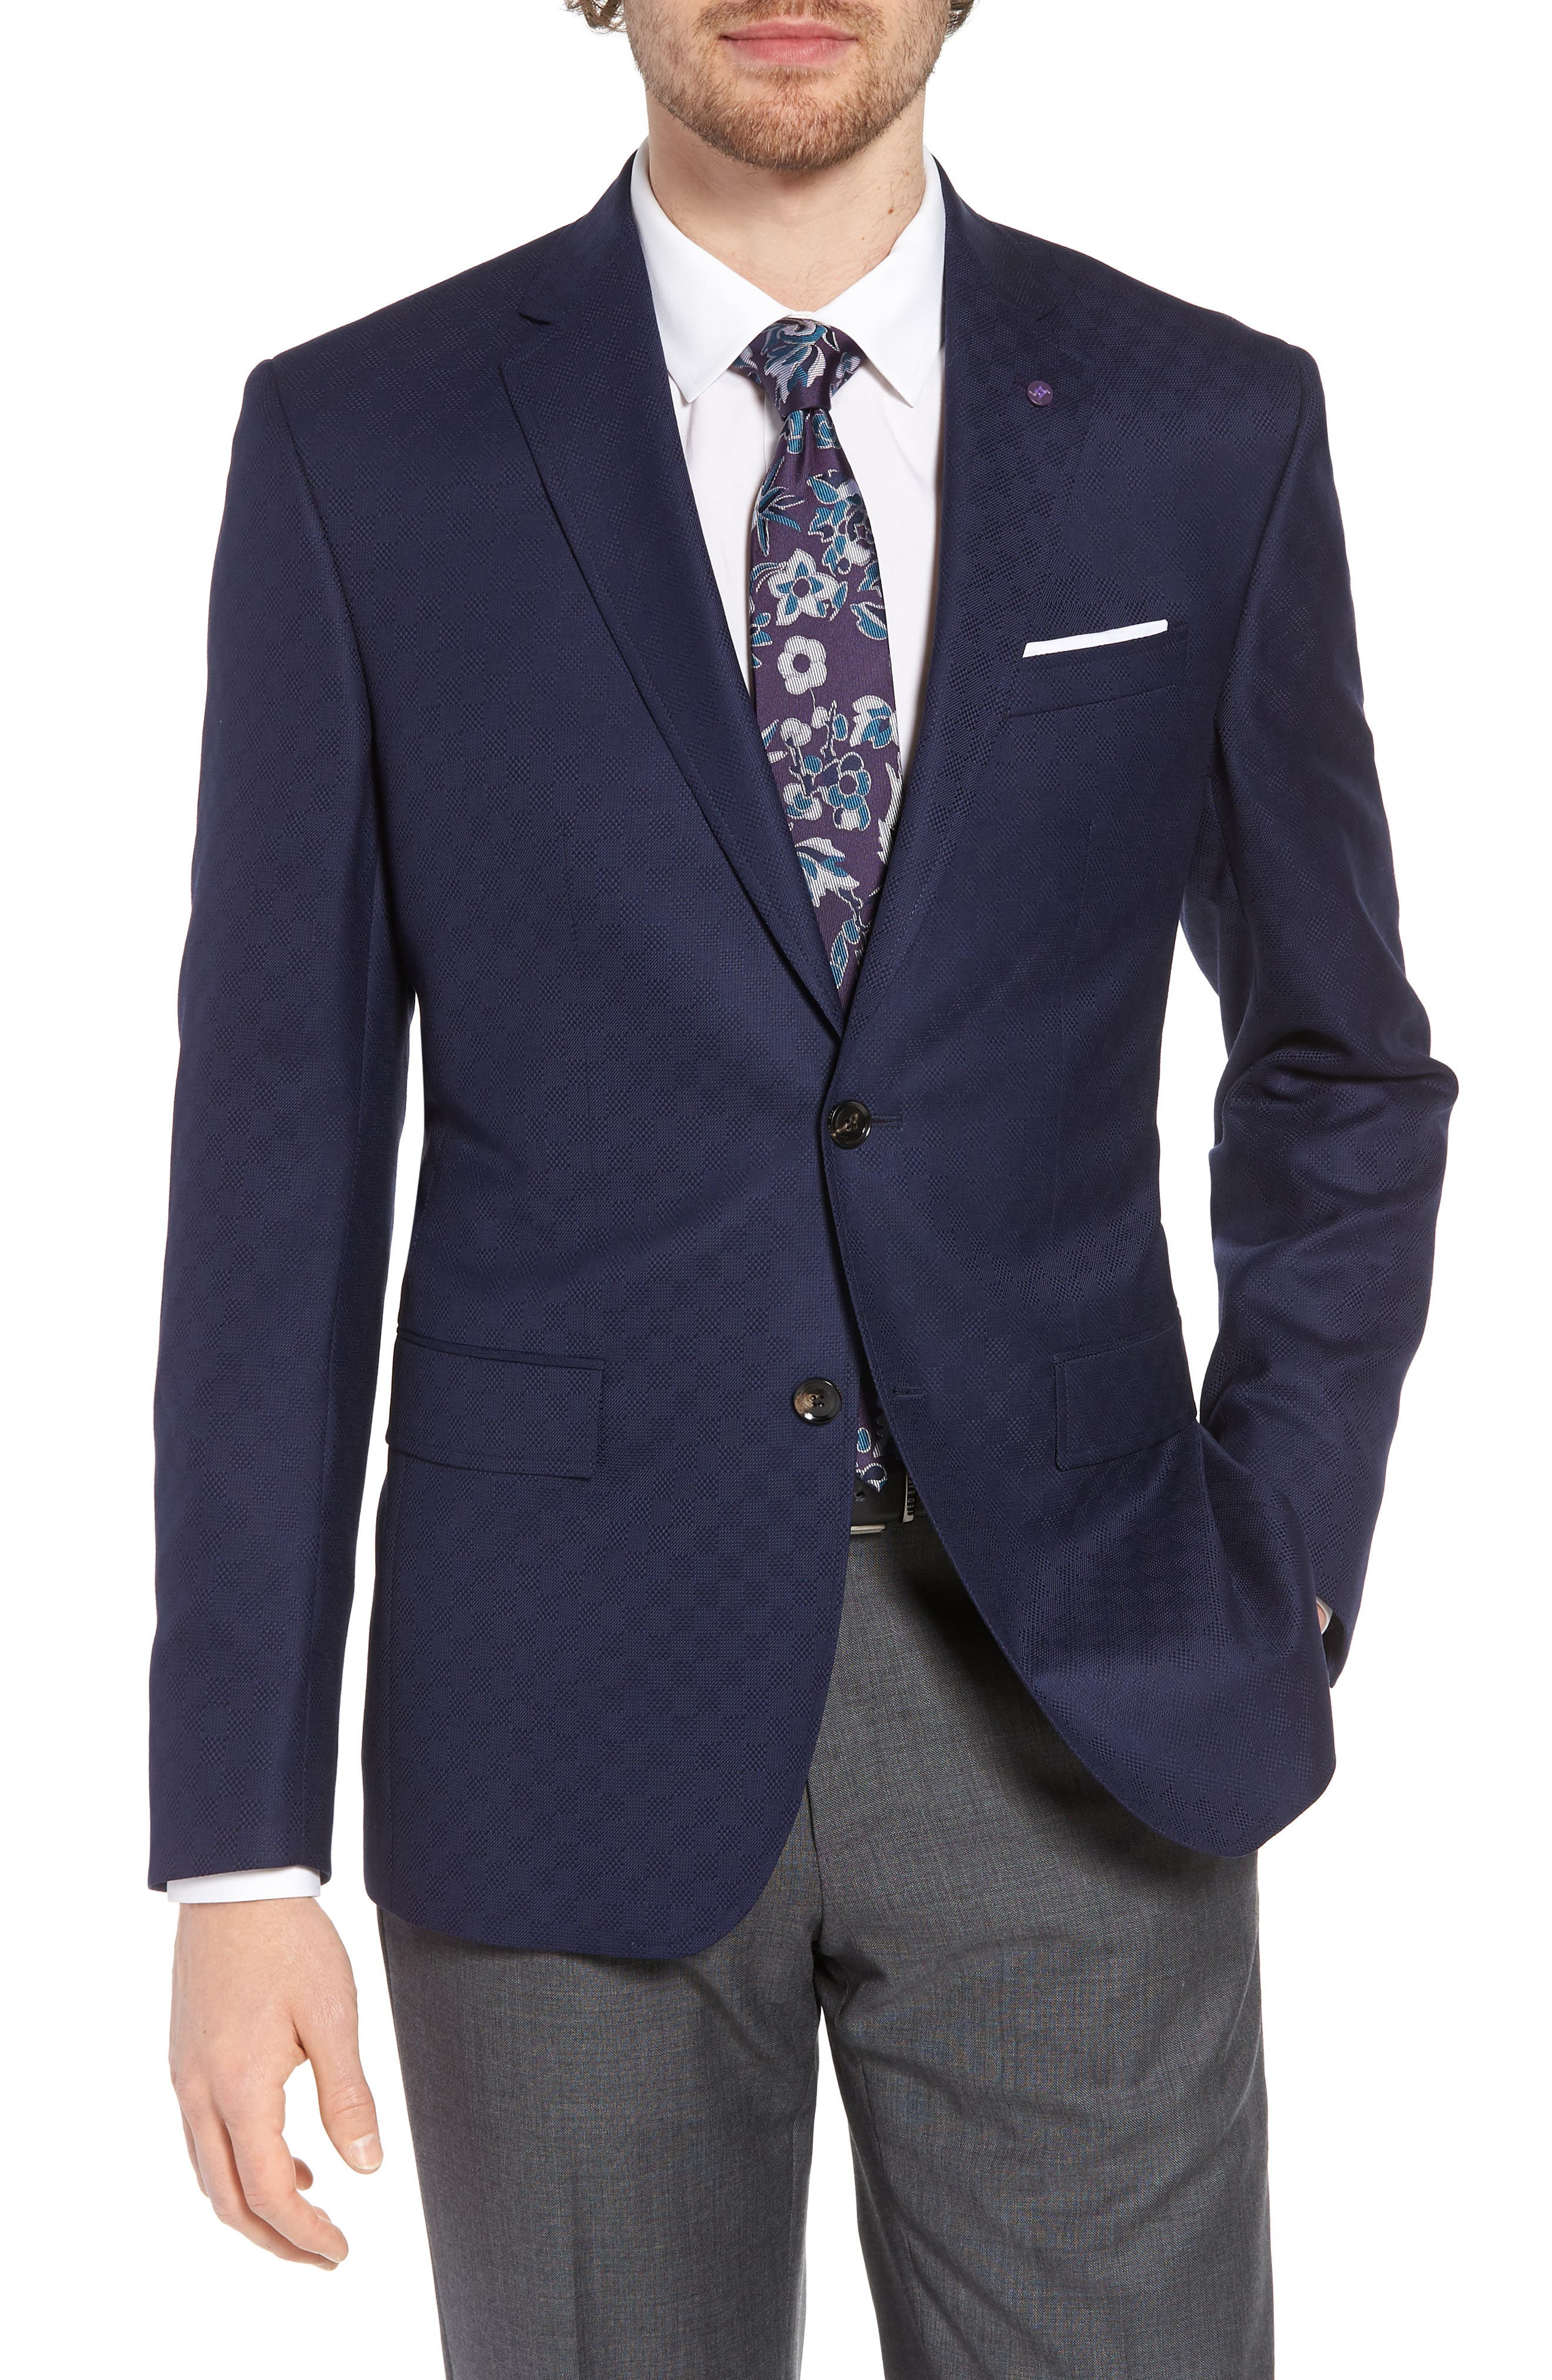 Jay Trim Fit Check Wool Sport Coat,                             Main thumbnail 1, color,                             Navy